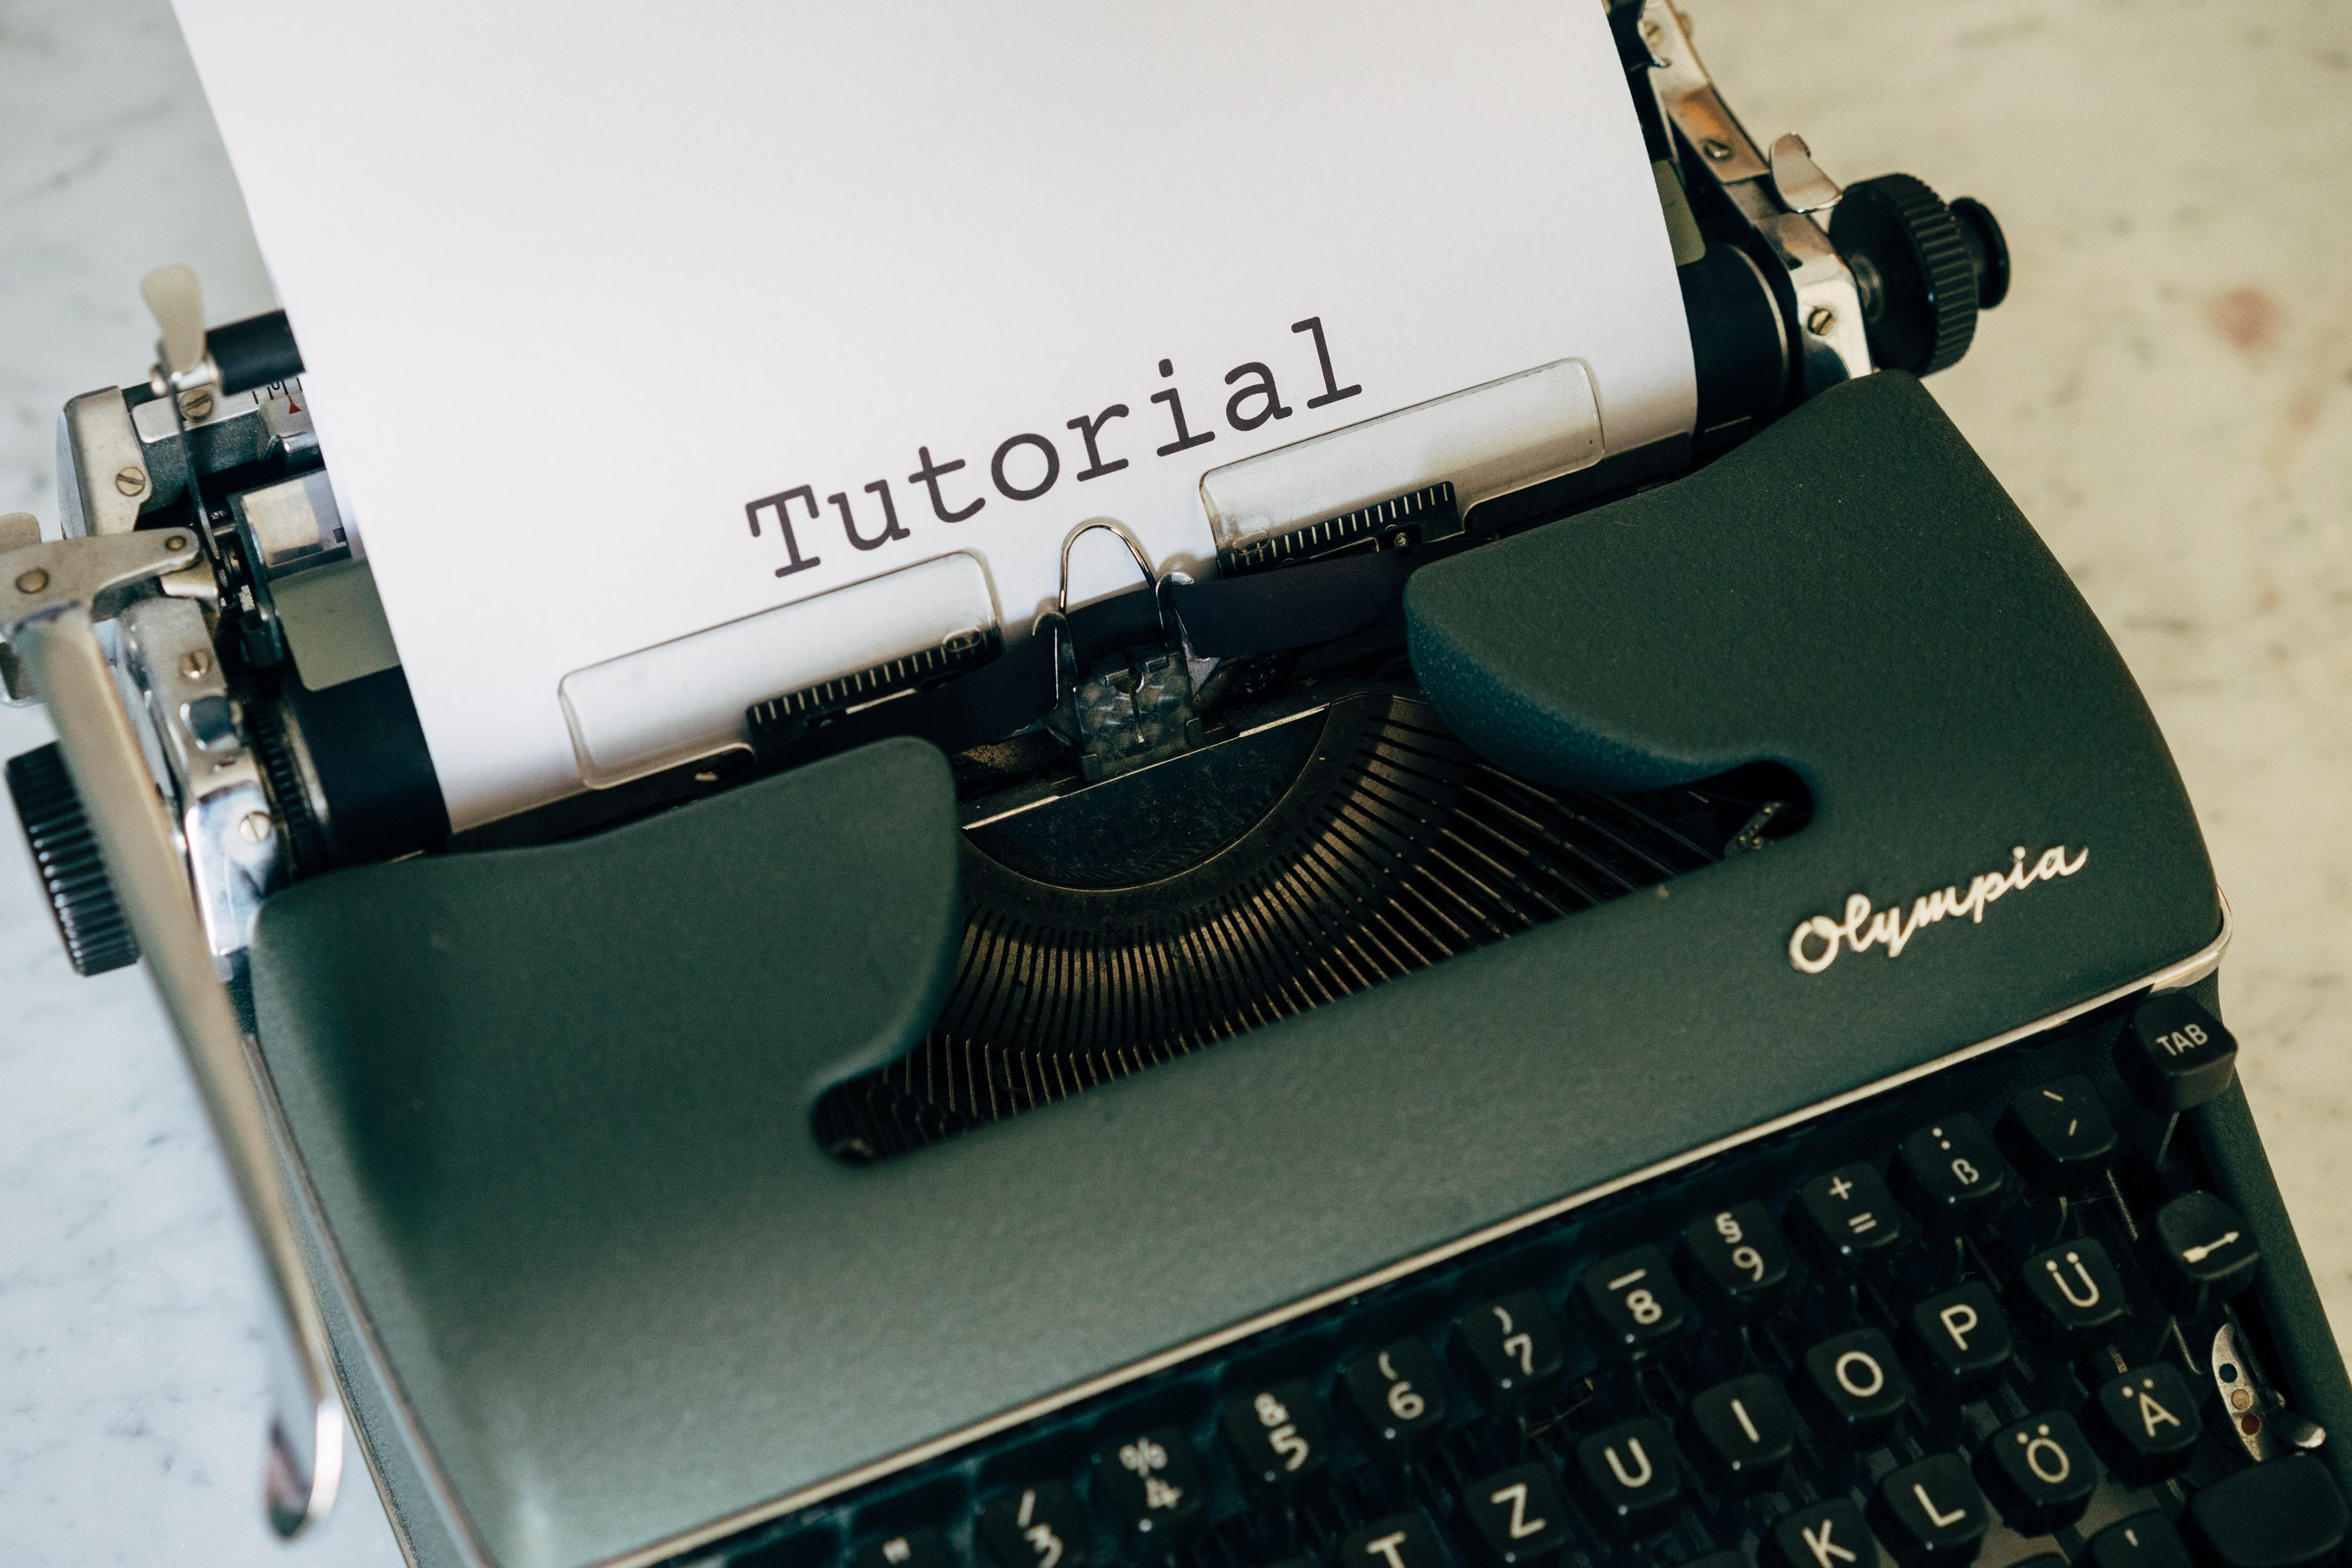 Tutorial Typewriter Image